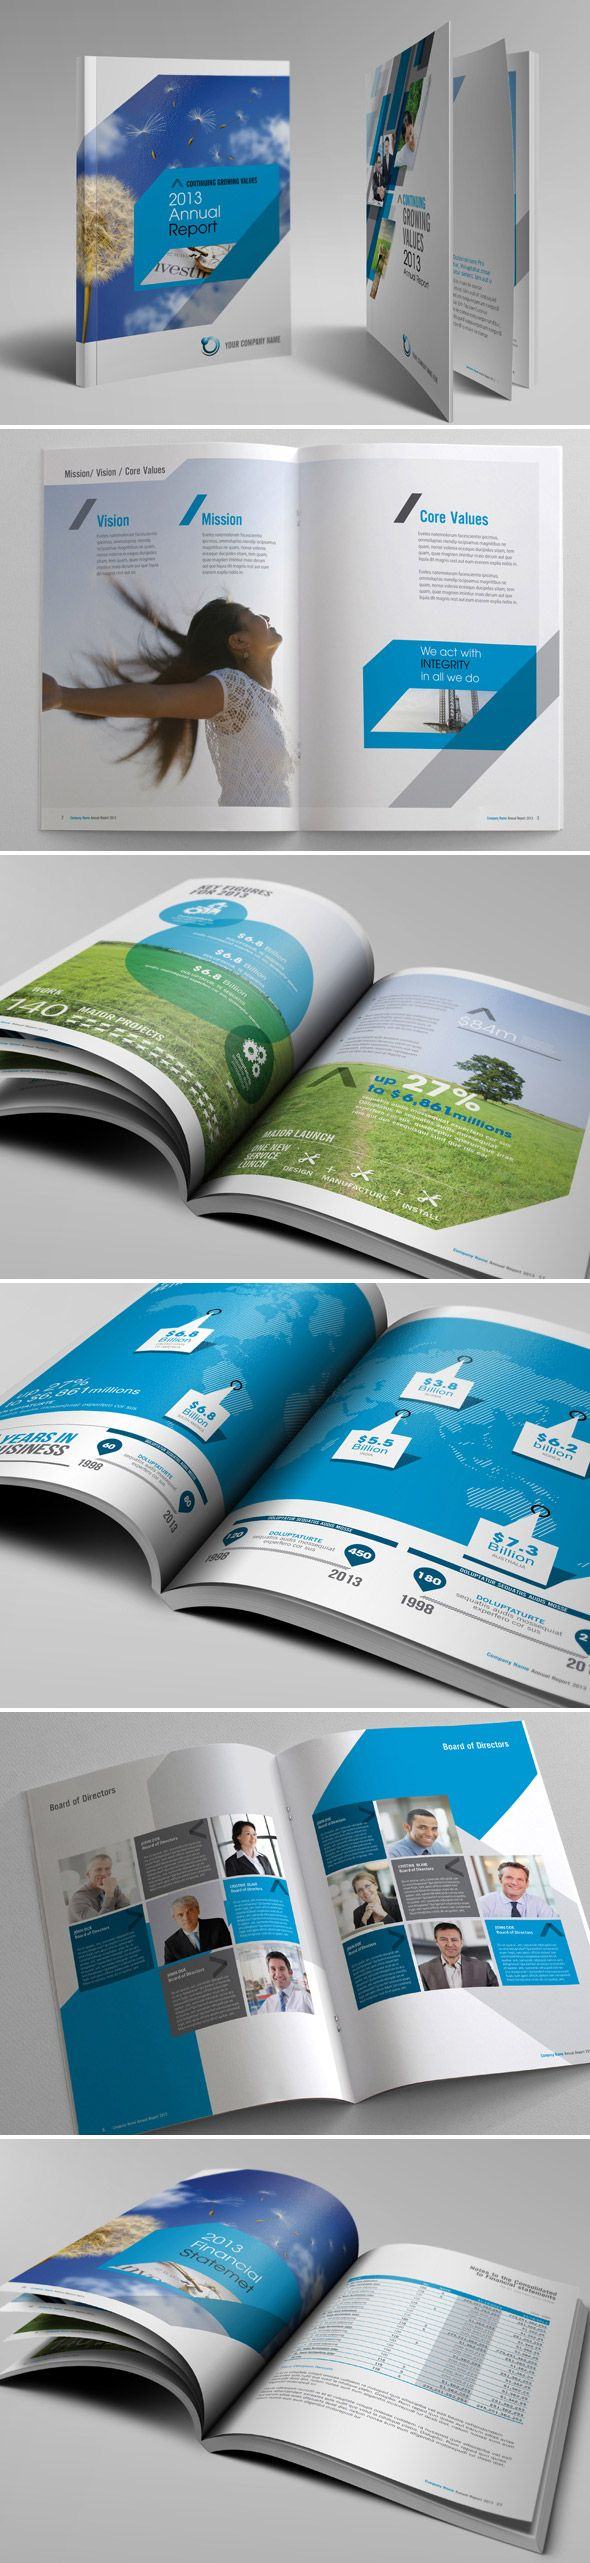 annual report design inspiration 2012 - Google Search